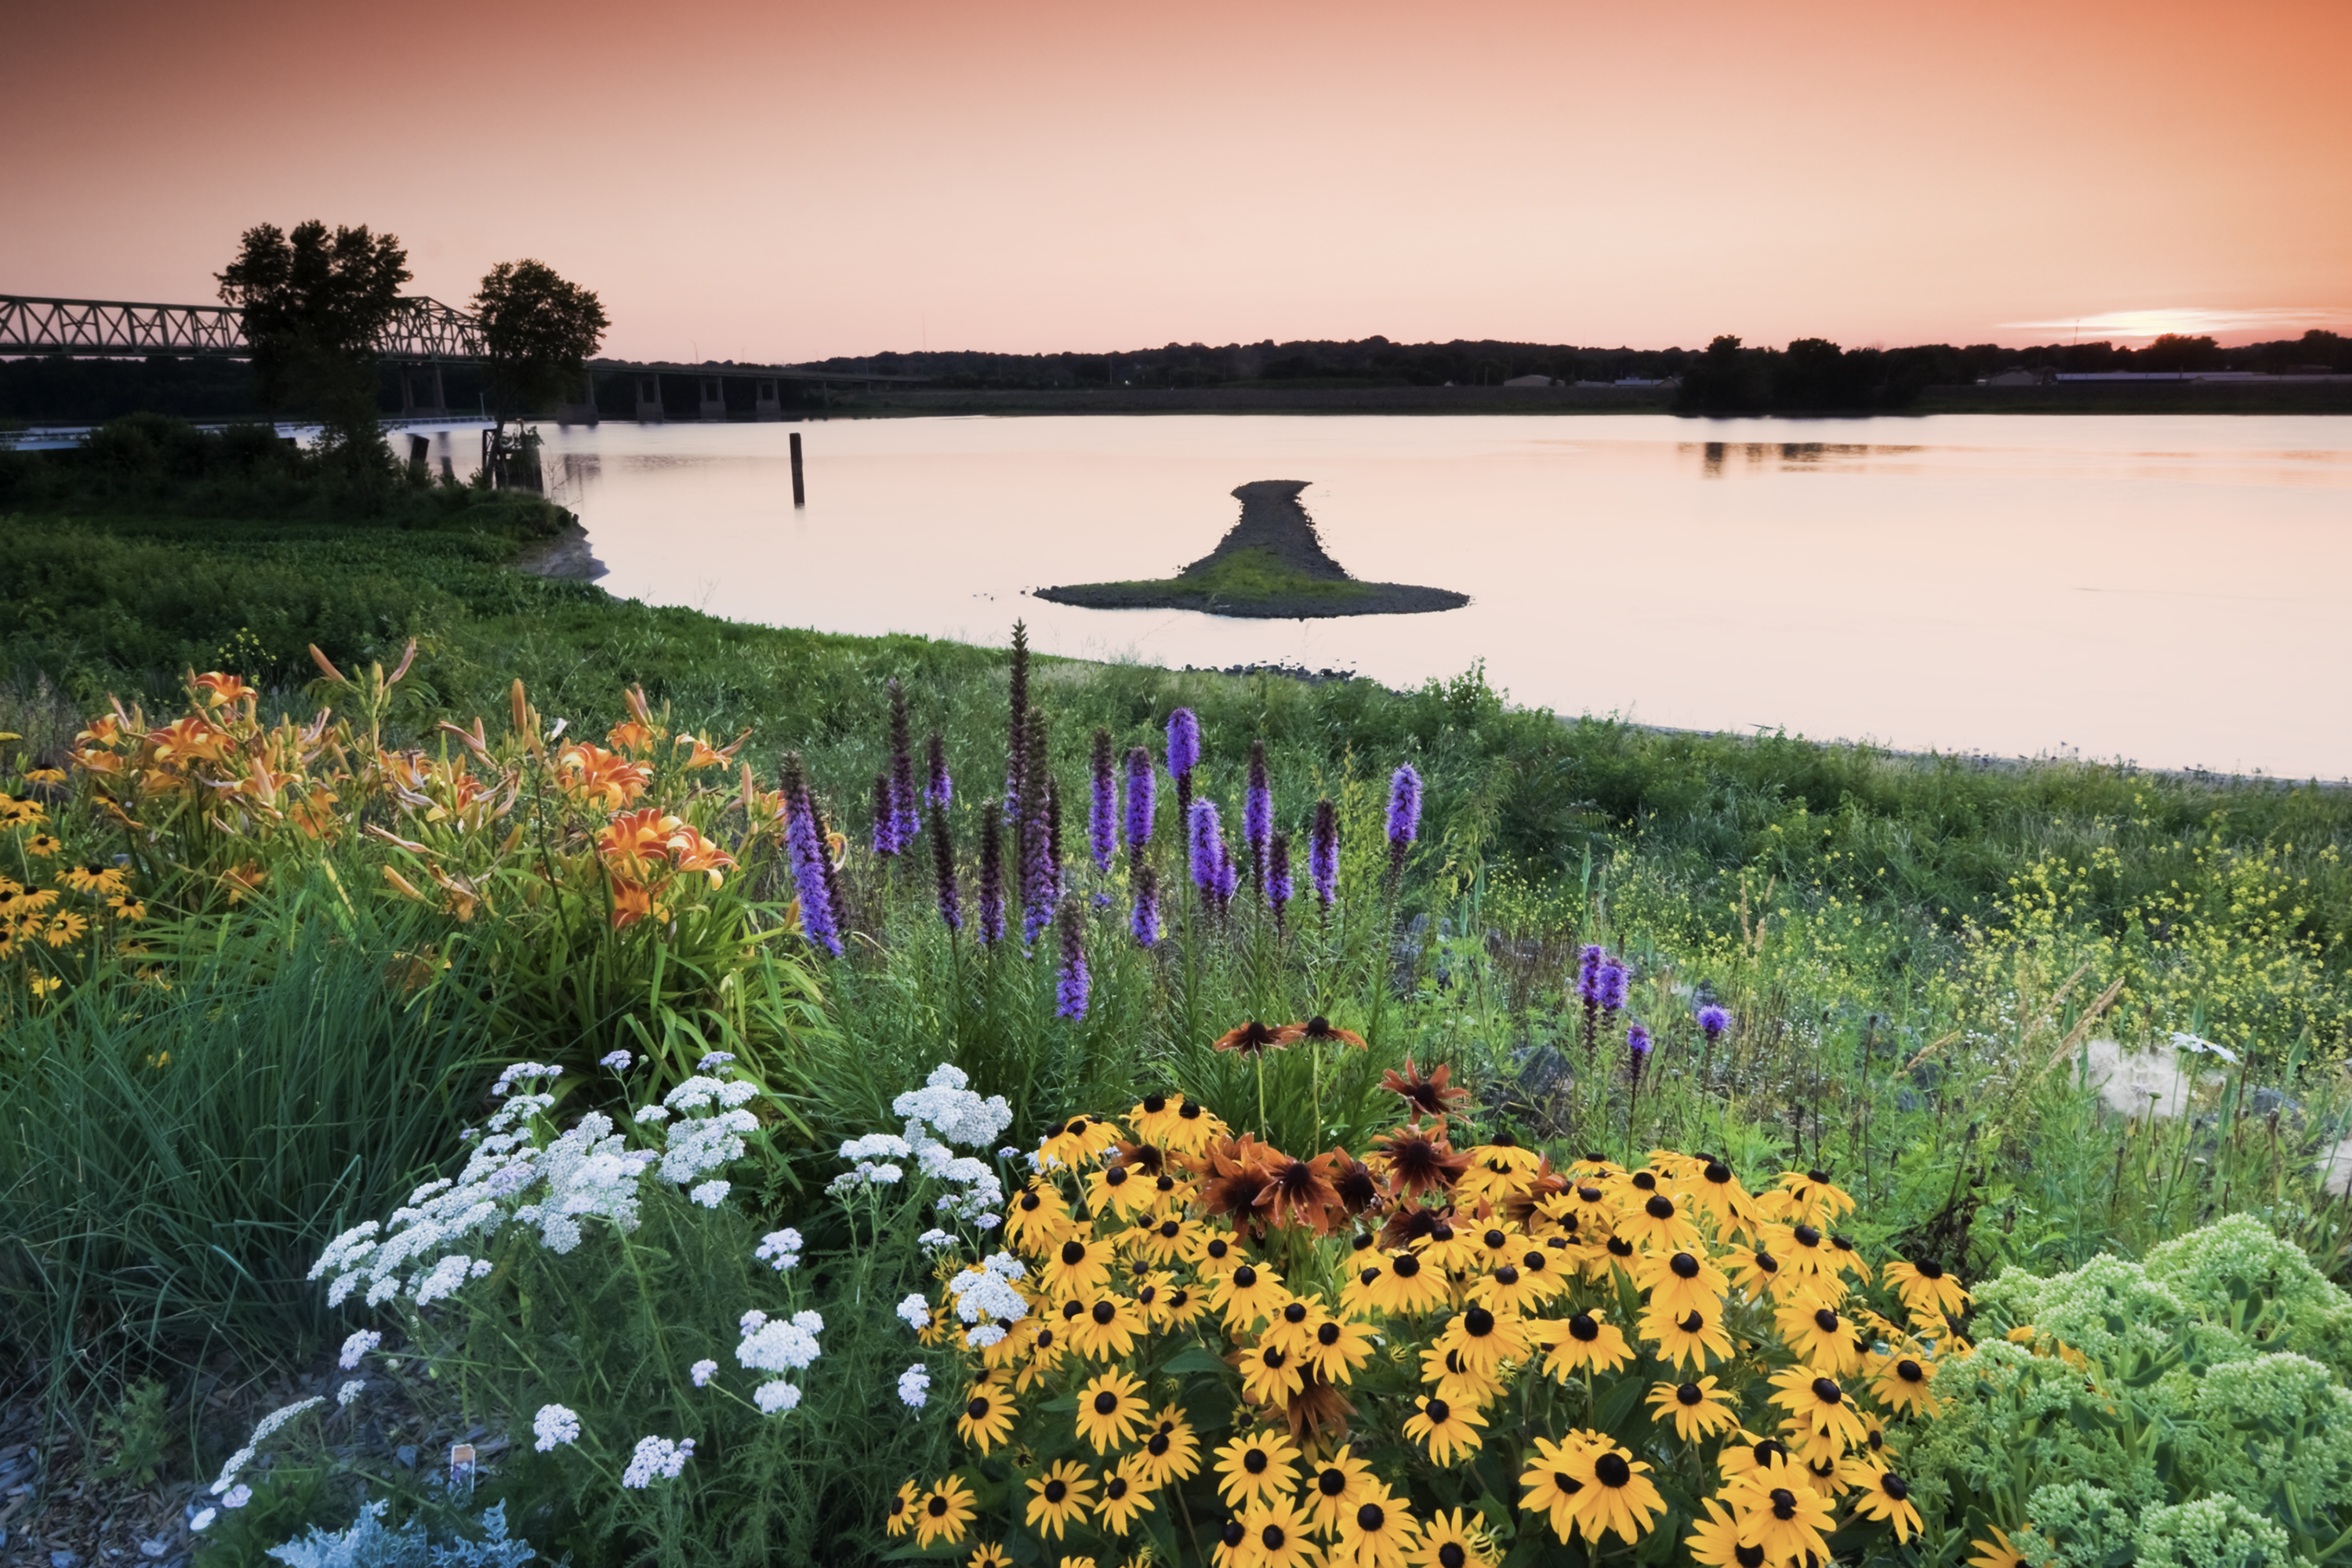 A river bank carpeted with grasses and colorful wildflowers.